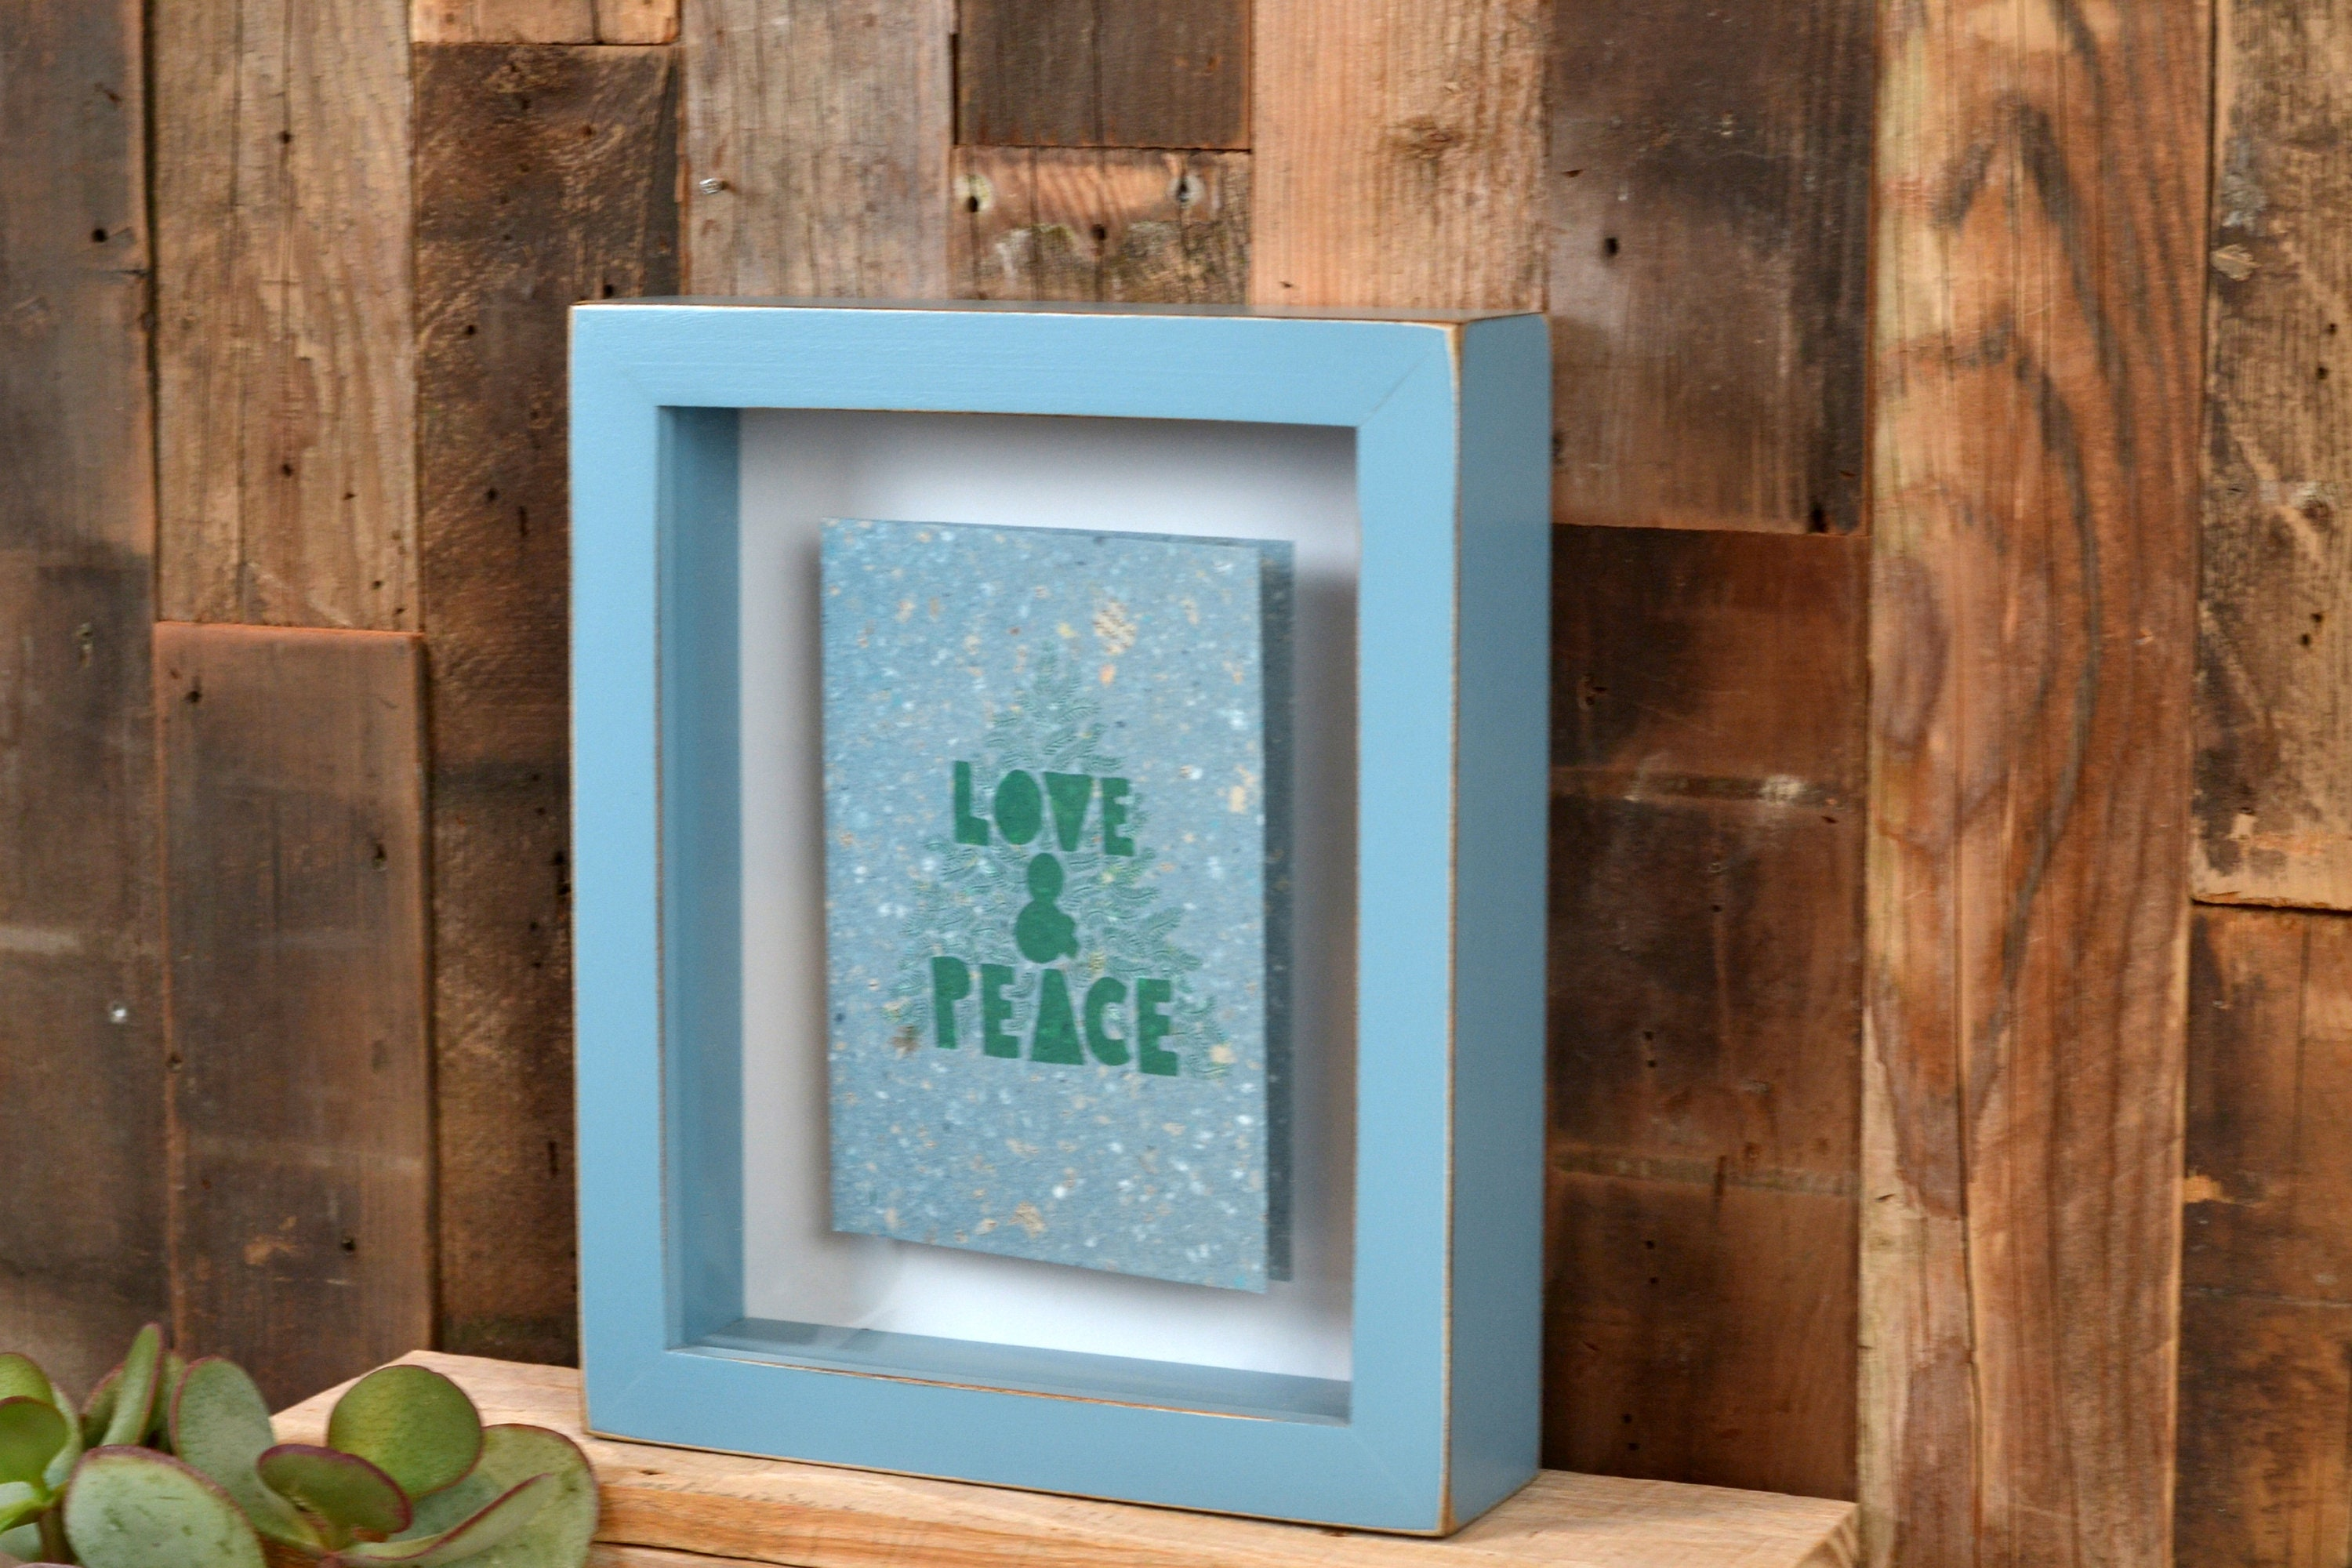 Shadow Box Frame - Holds up to 7.75 x 9.75 x 1.5 deep - with Vintage ...